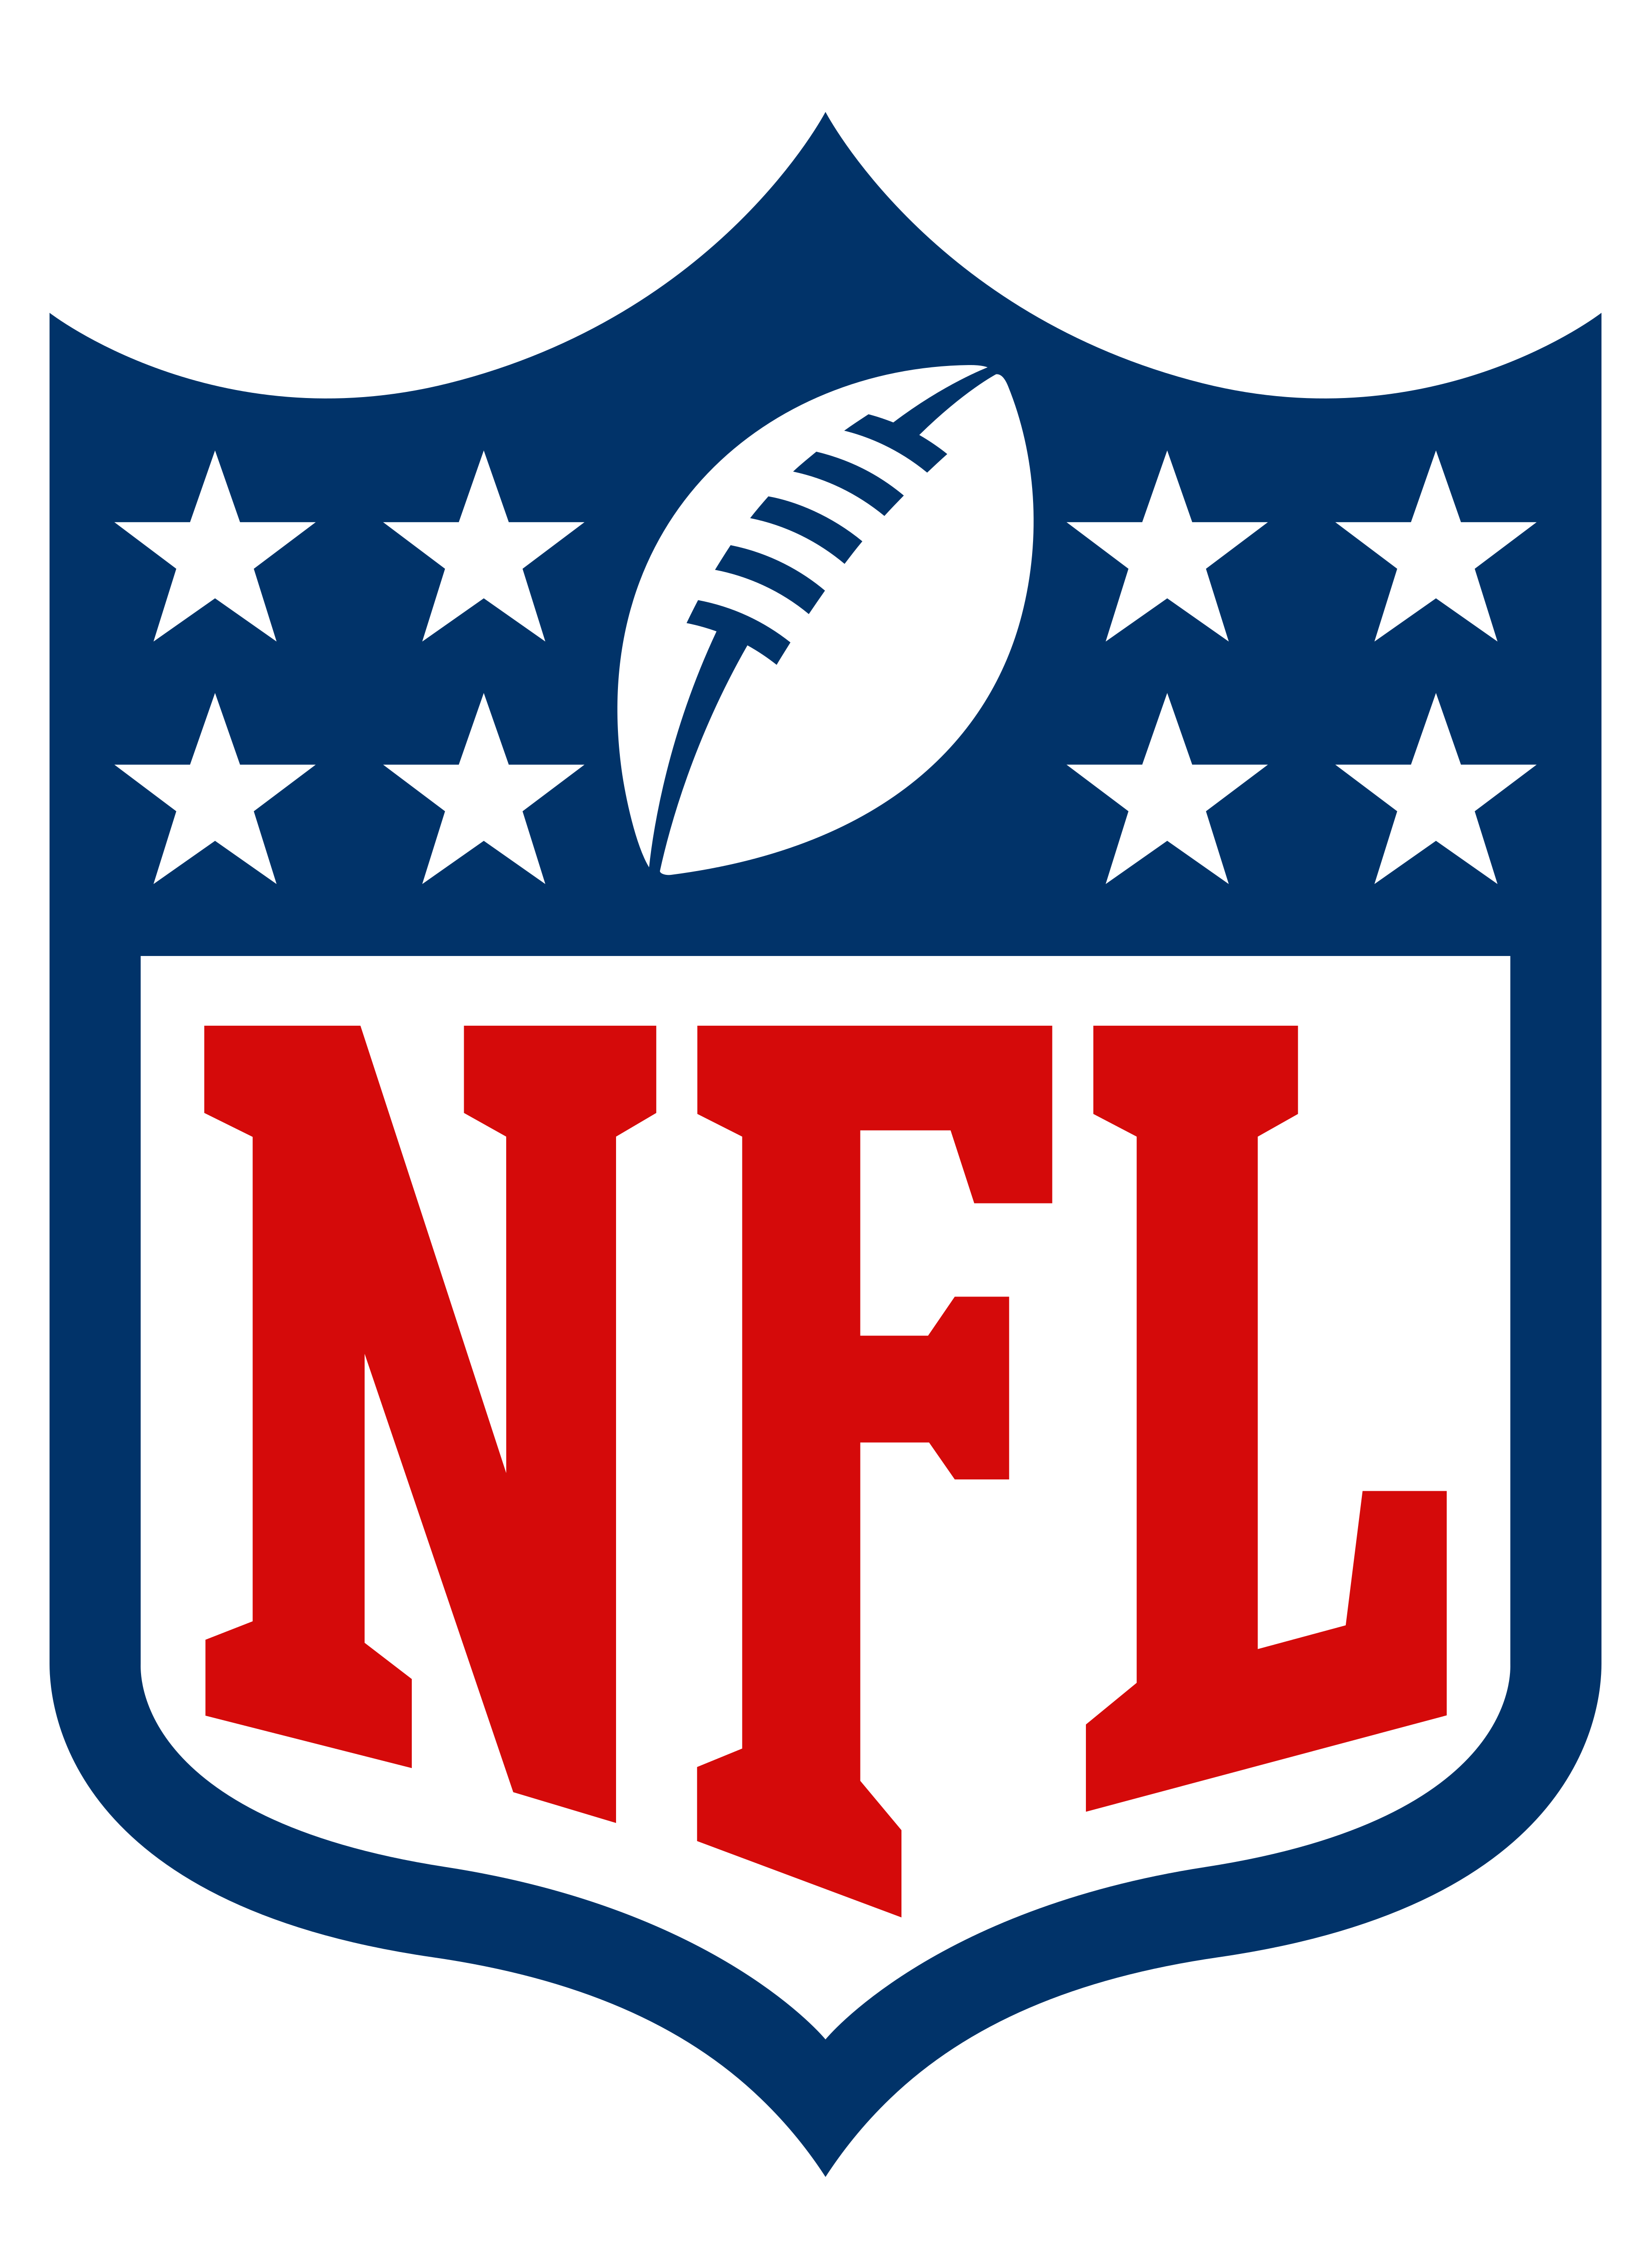 nfl logo - NFL Logo - National Football League Logo